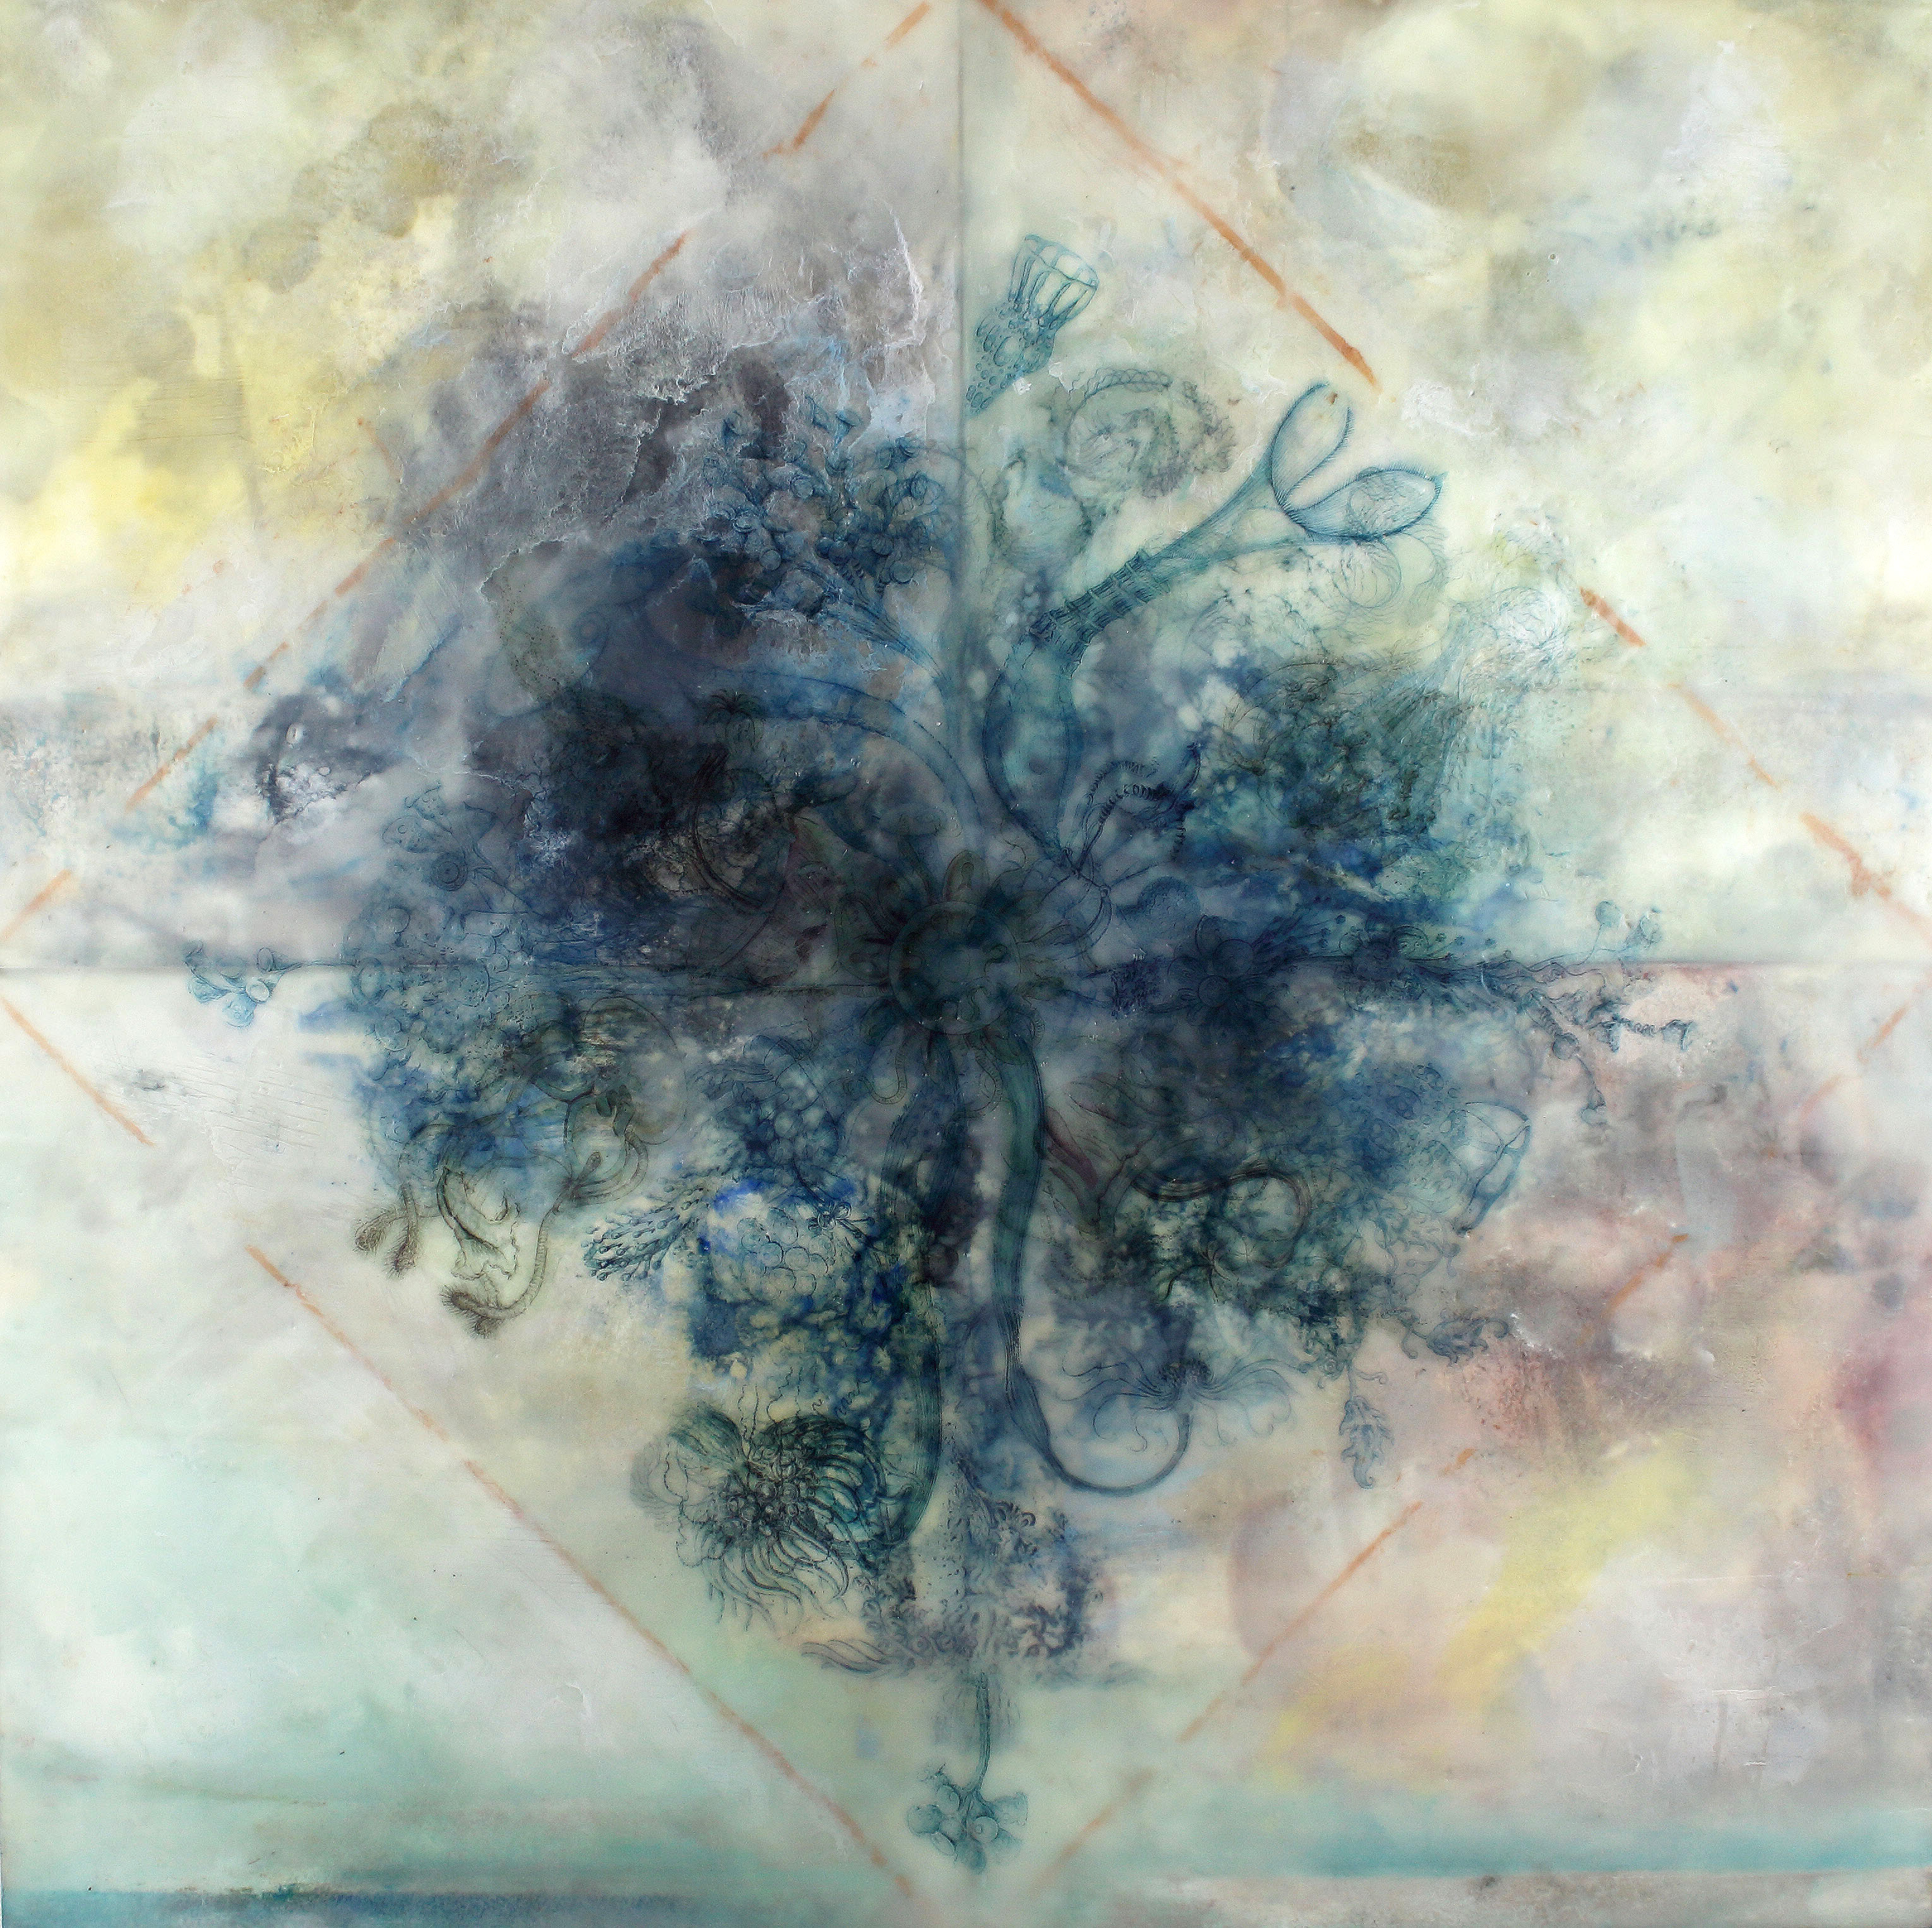 "View Image Details PRIMORDIAL TANGLE (FLOWER TORNADO), 2014 Oil paints, powdered pigments, inks, encaustic on paper mounted on birch panel, 20"" x 2"